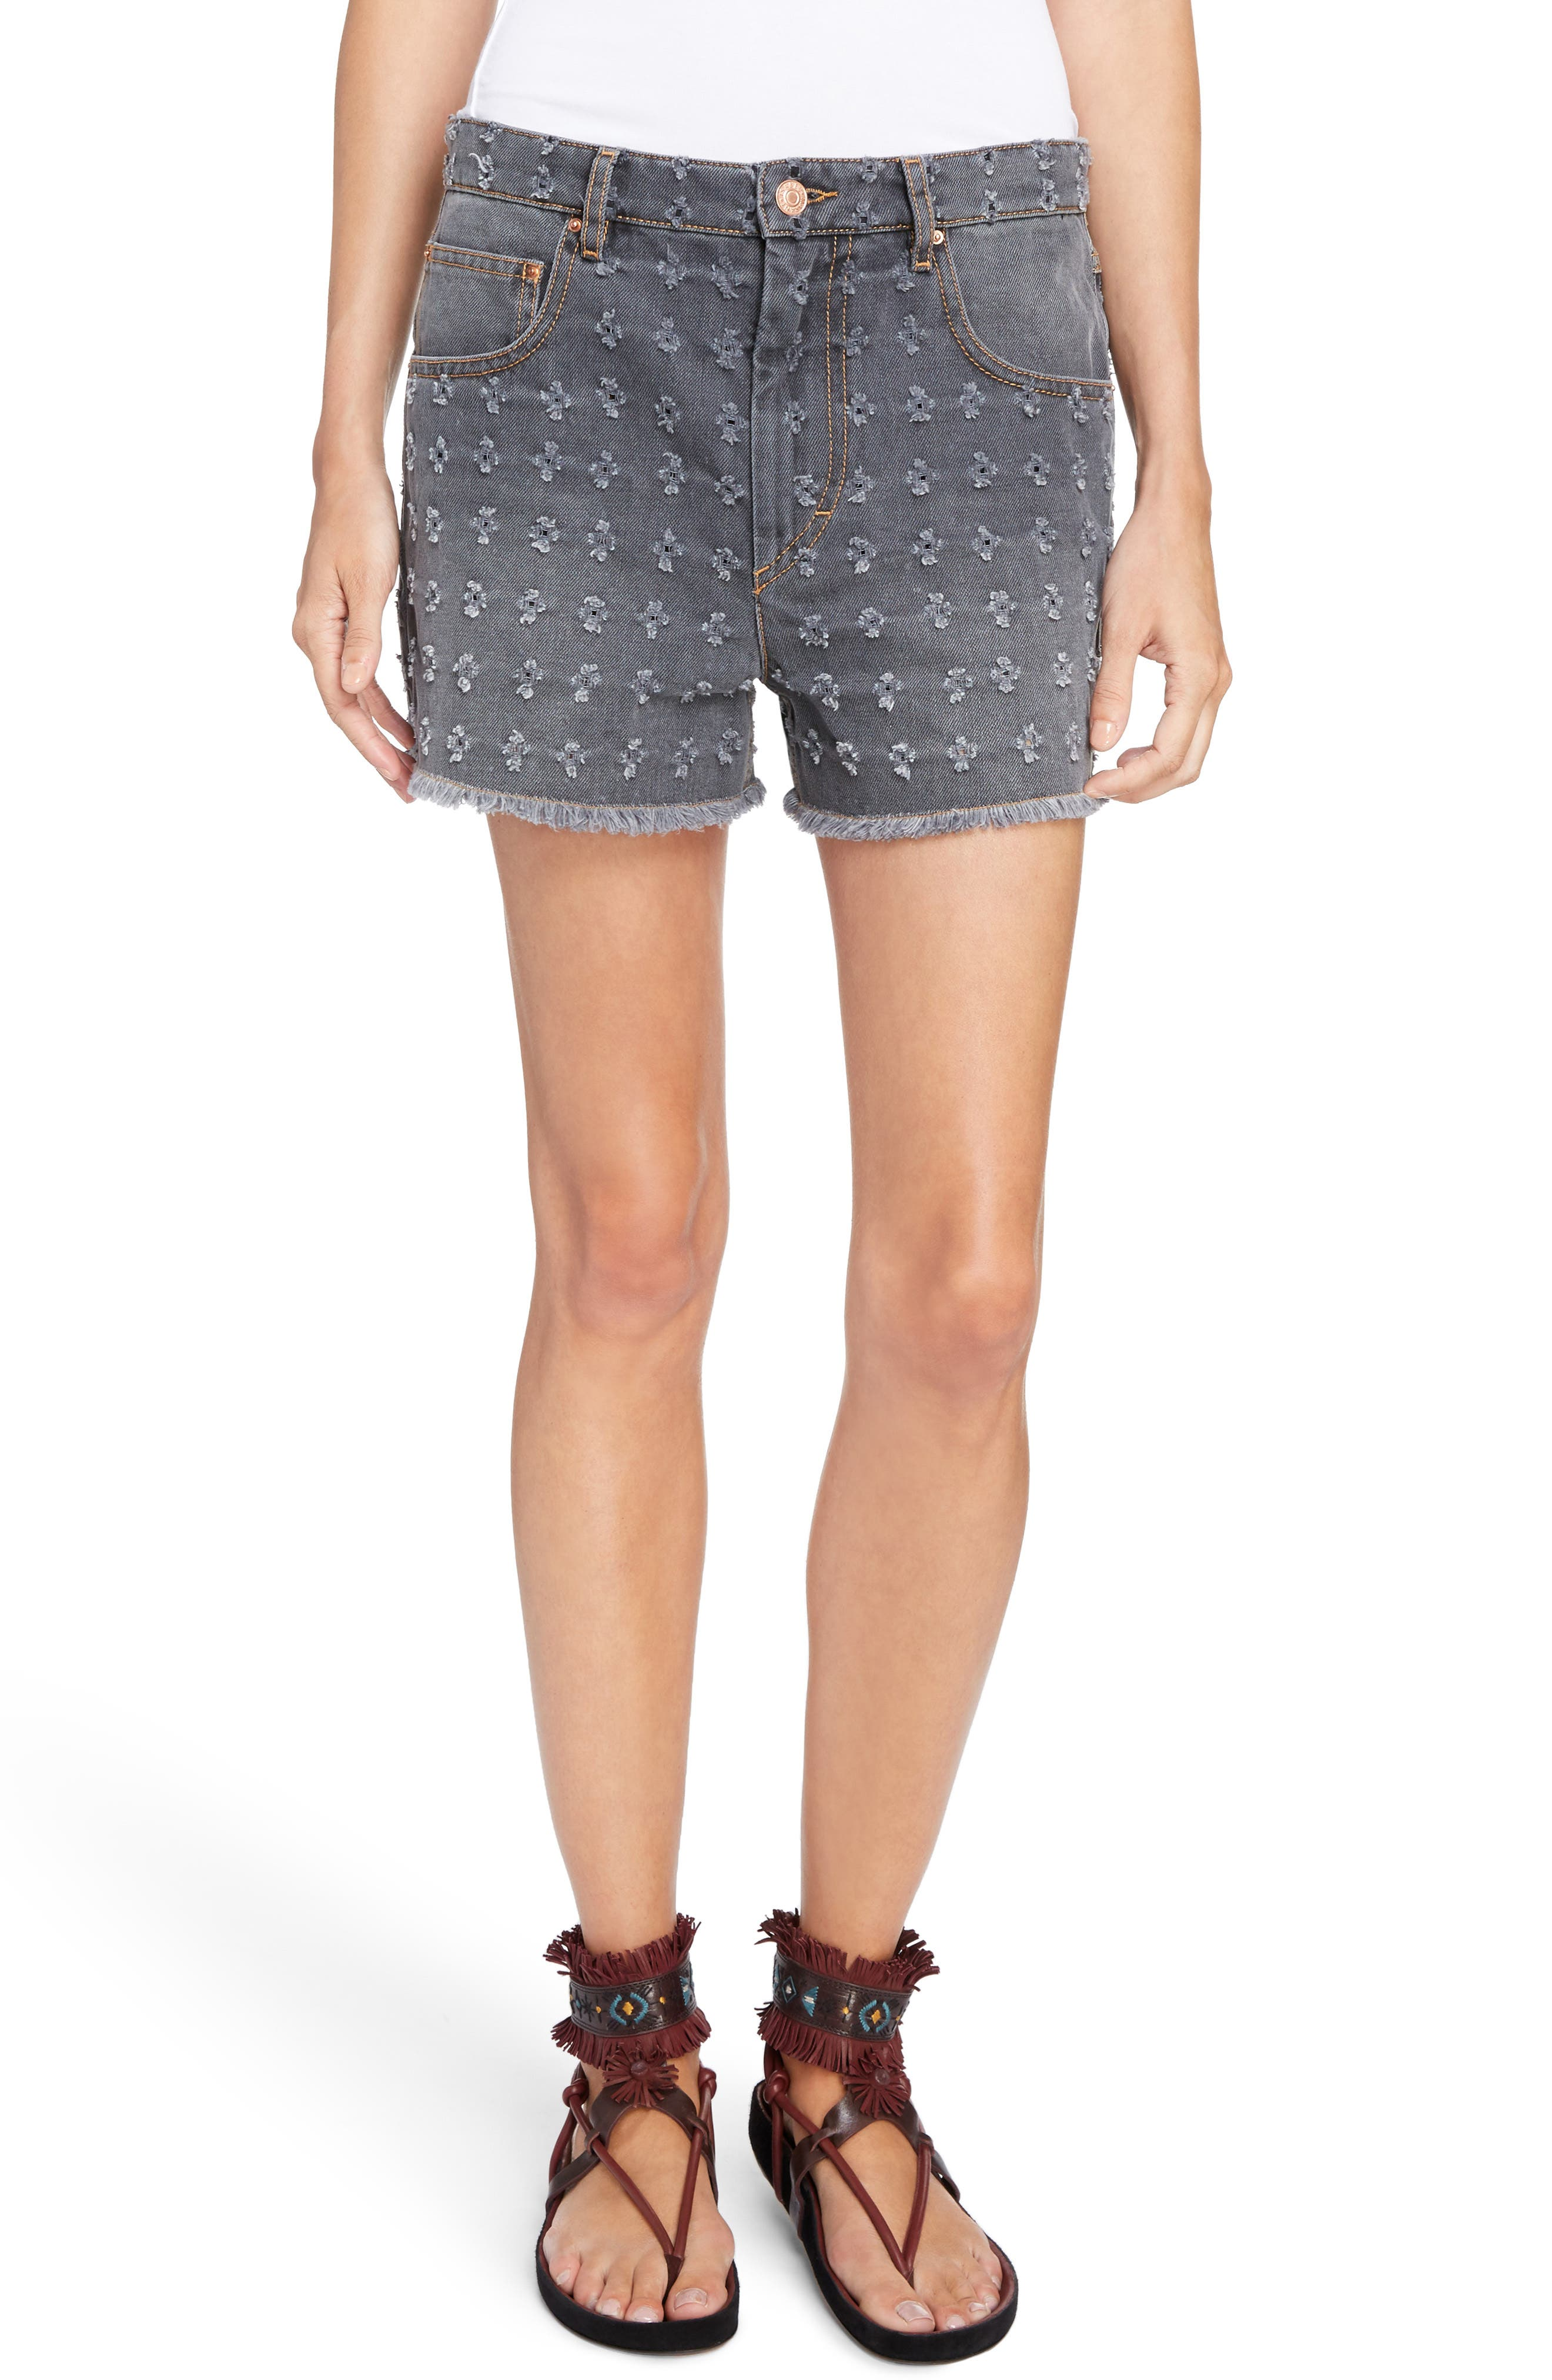 Isabel Marant Étoile Ripped Denim Shorts,                         Main,                         color, Grey